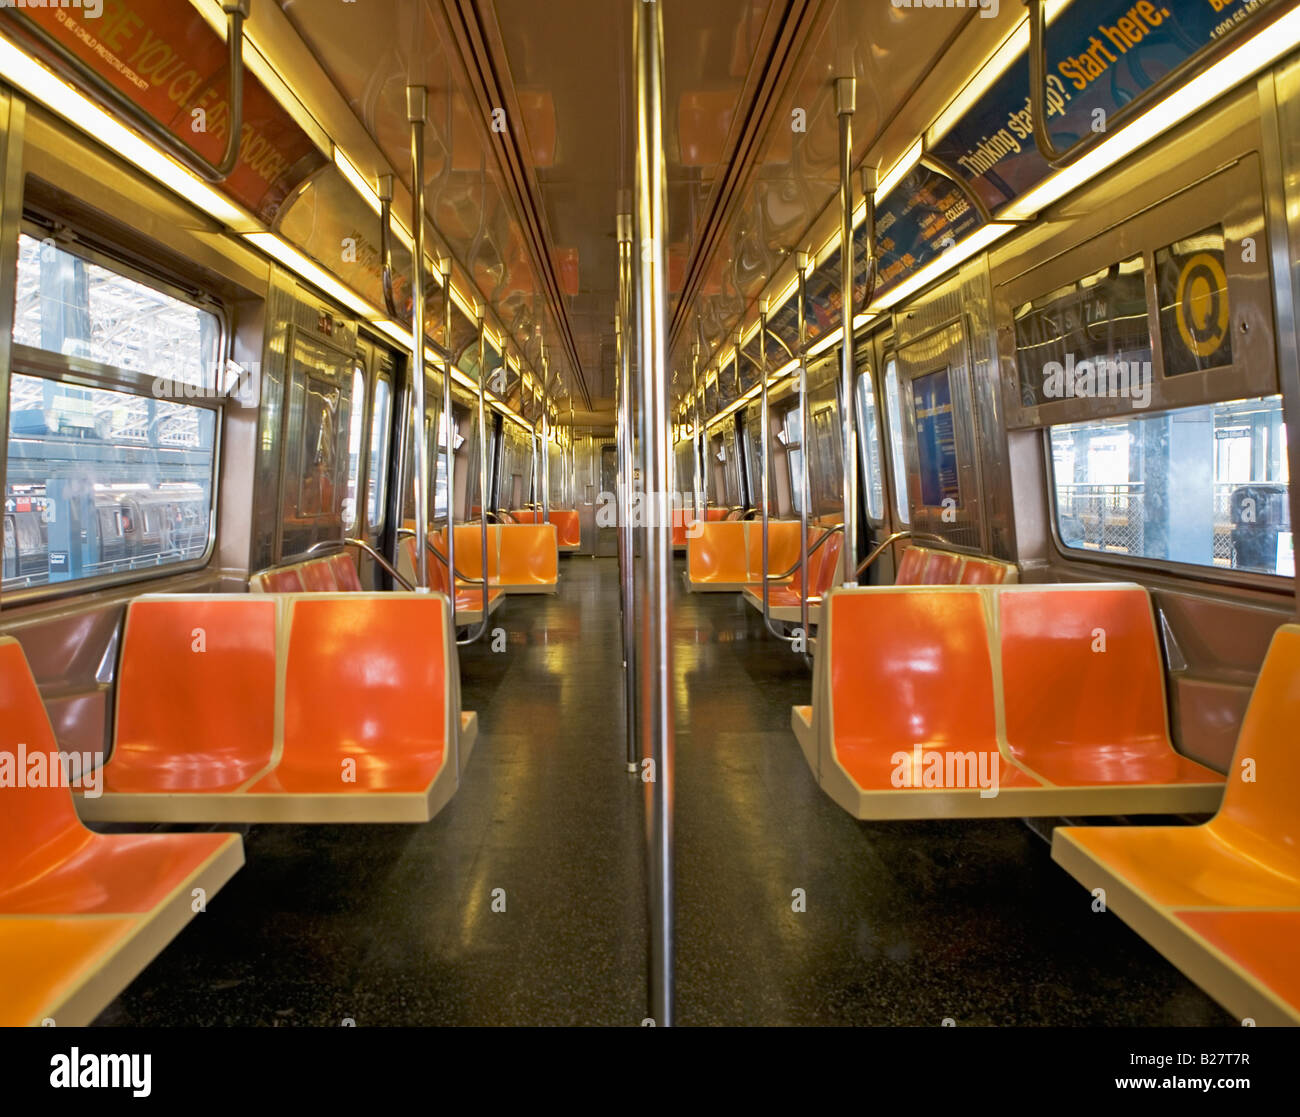 Interior Of Subway Train, New York City, New York, United